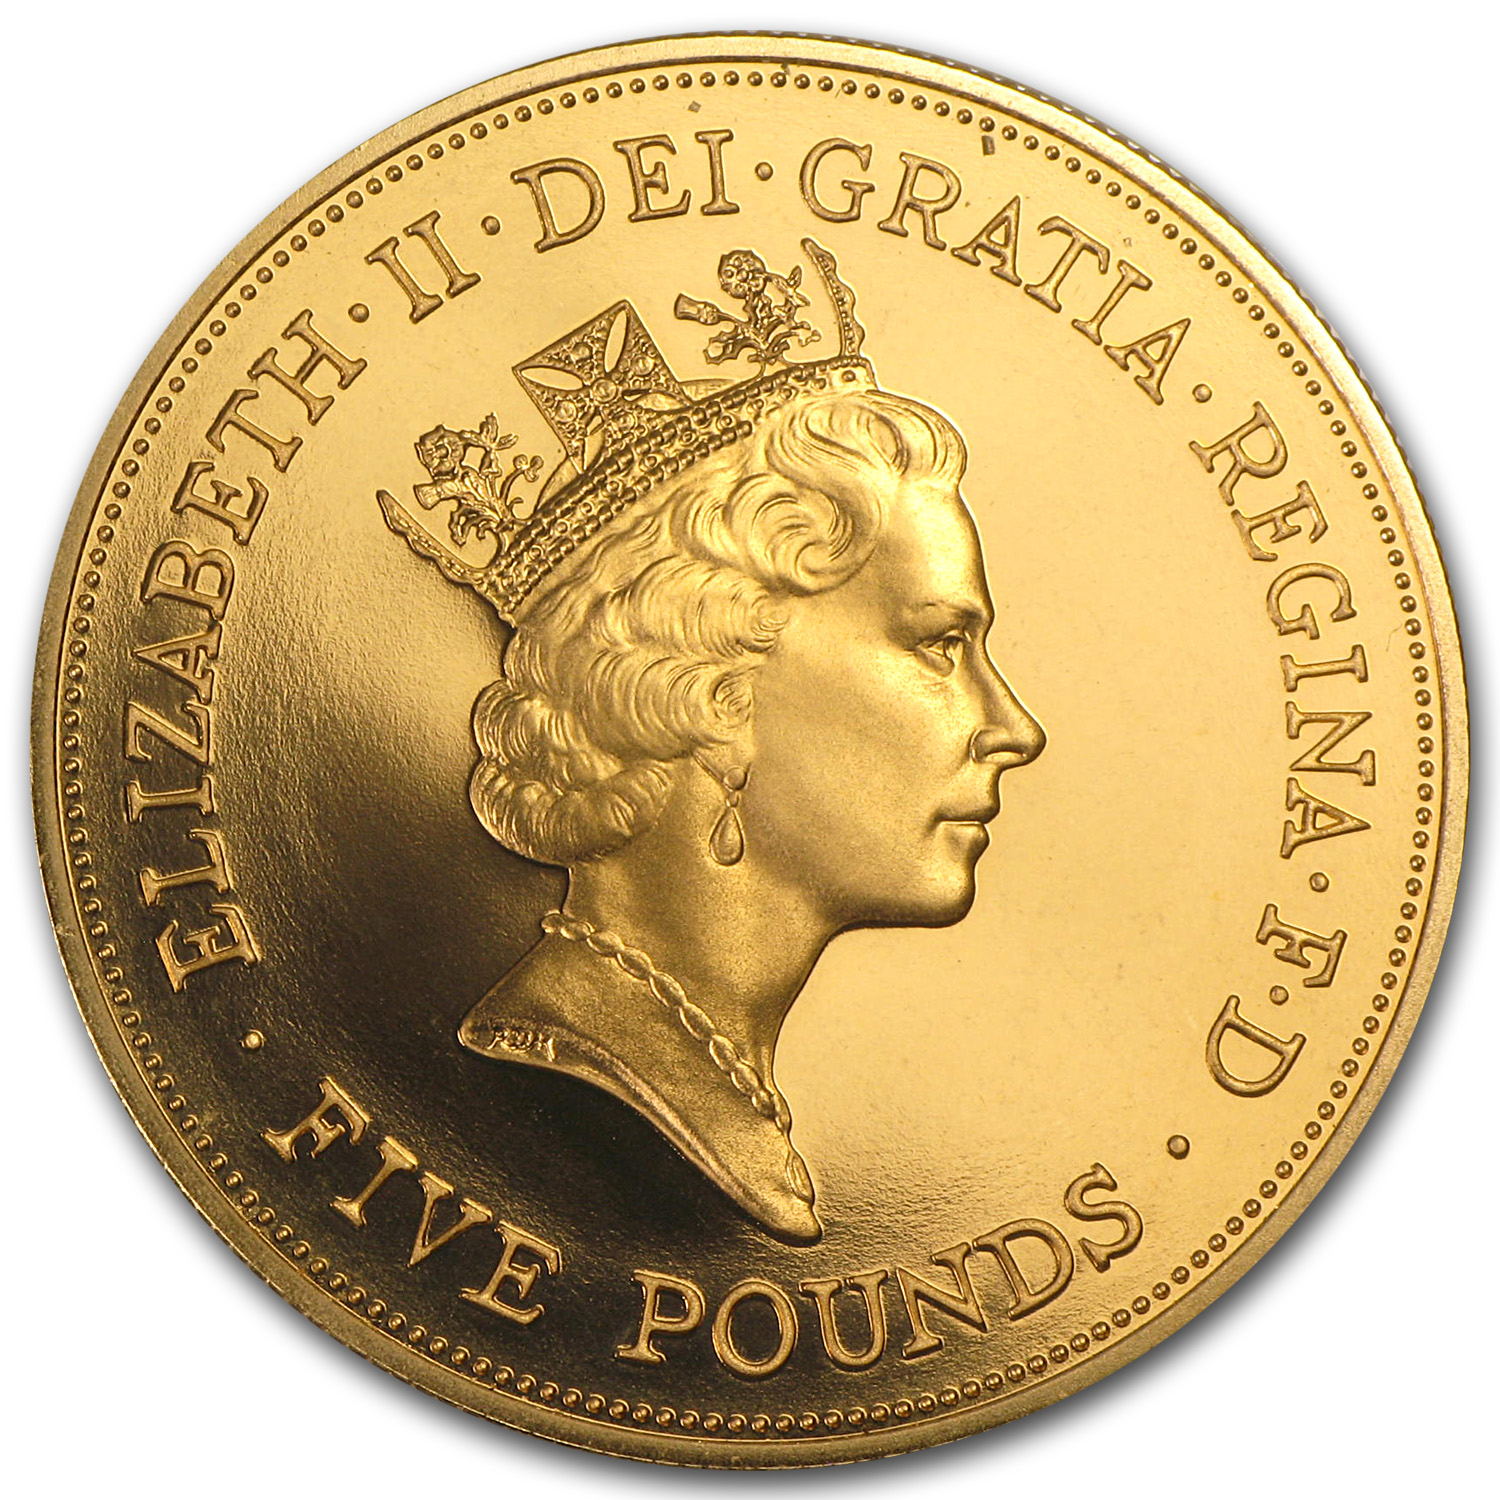 1990 Great Britain Gold £5 Proof Queen Mother